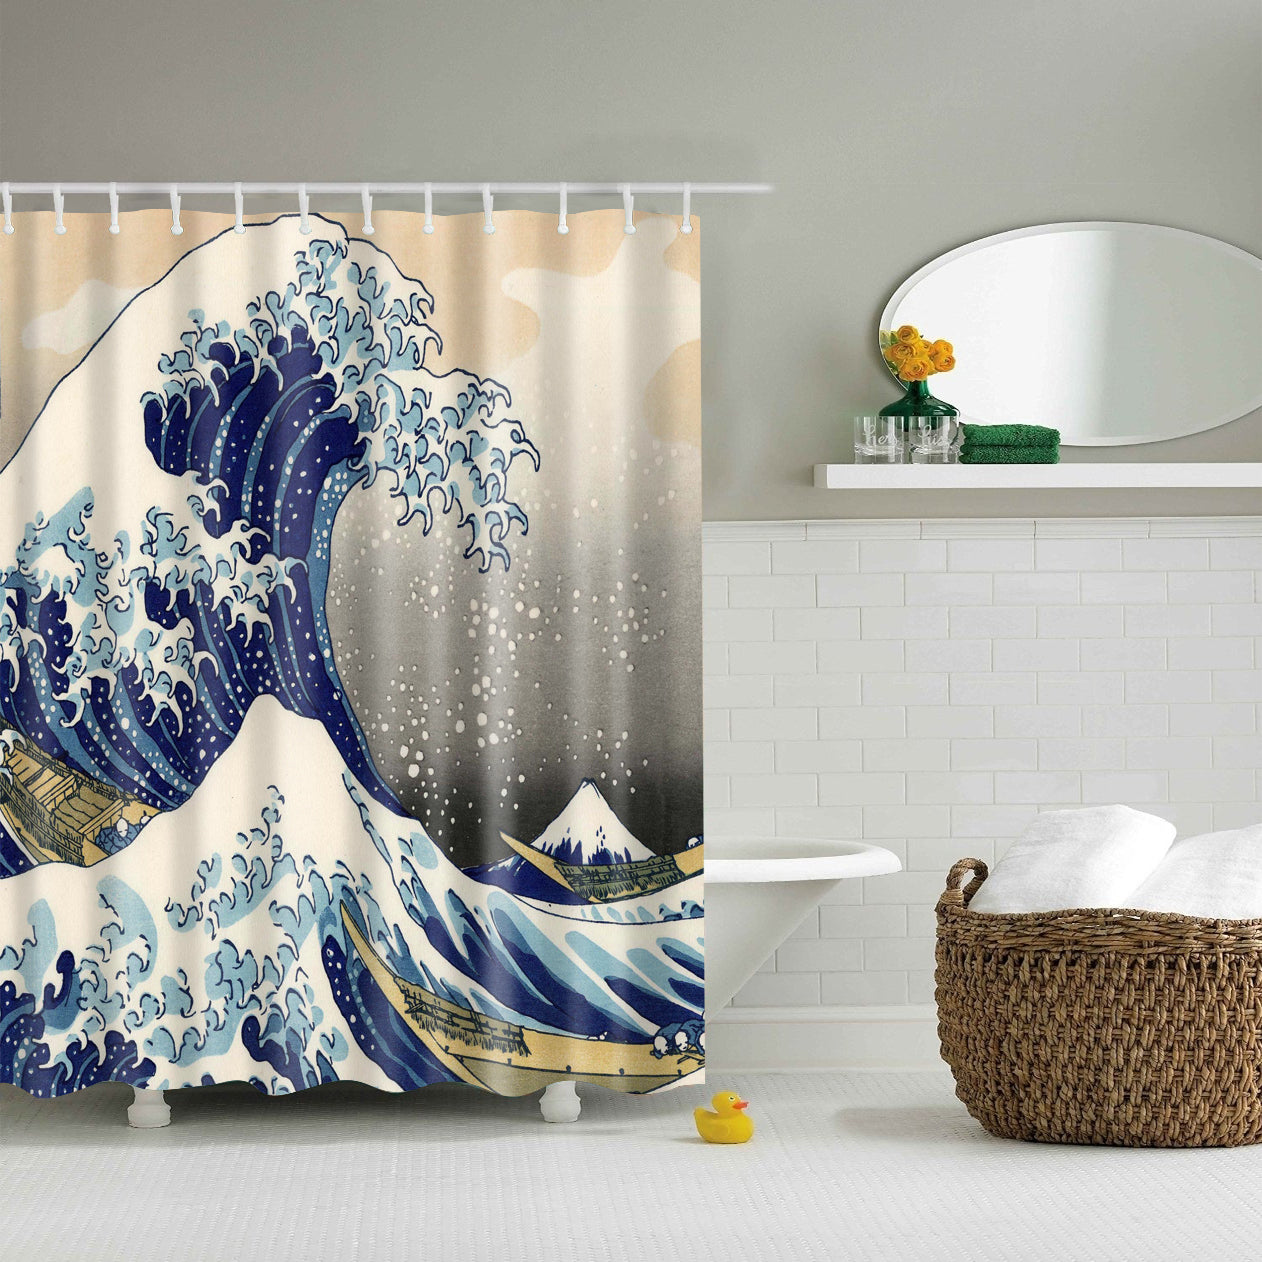 The Great Wave off Kanagawa Shower Curtain | GoJeek